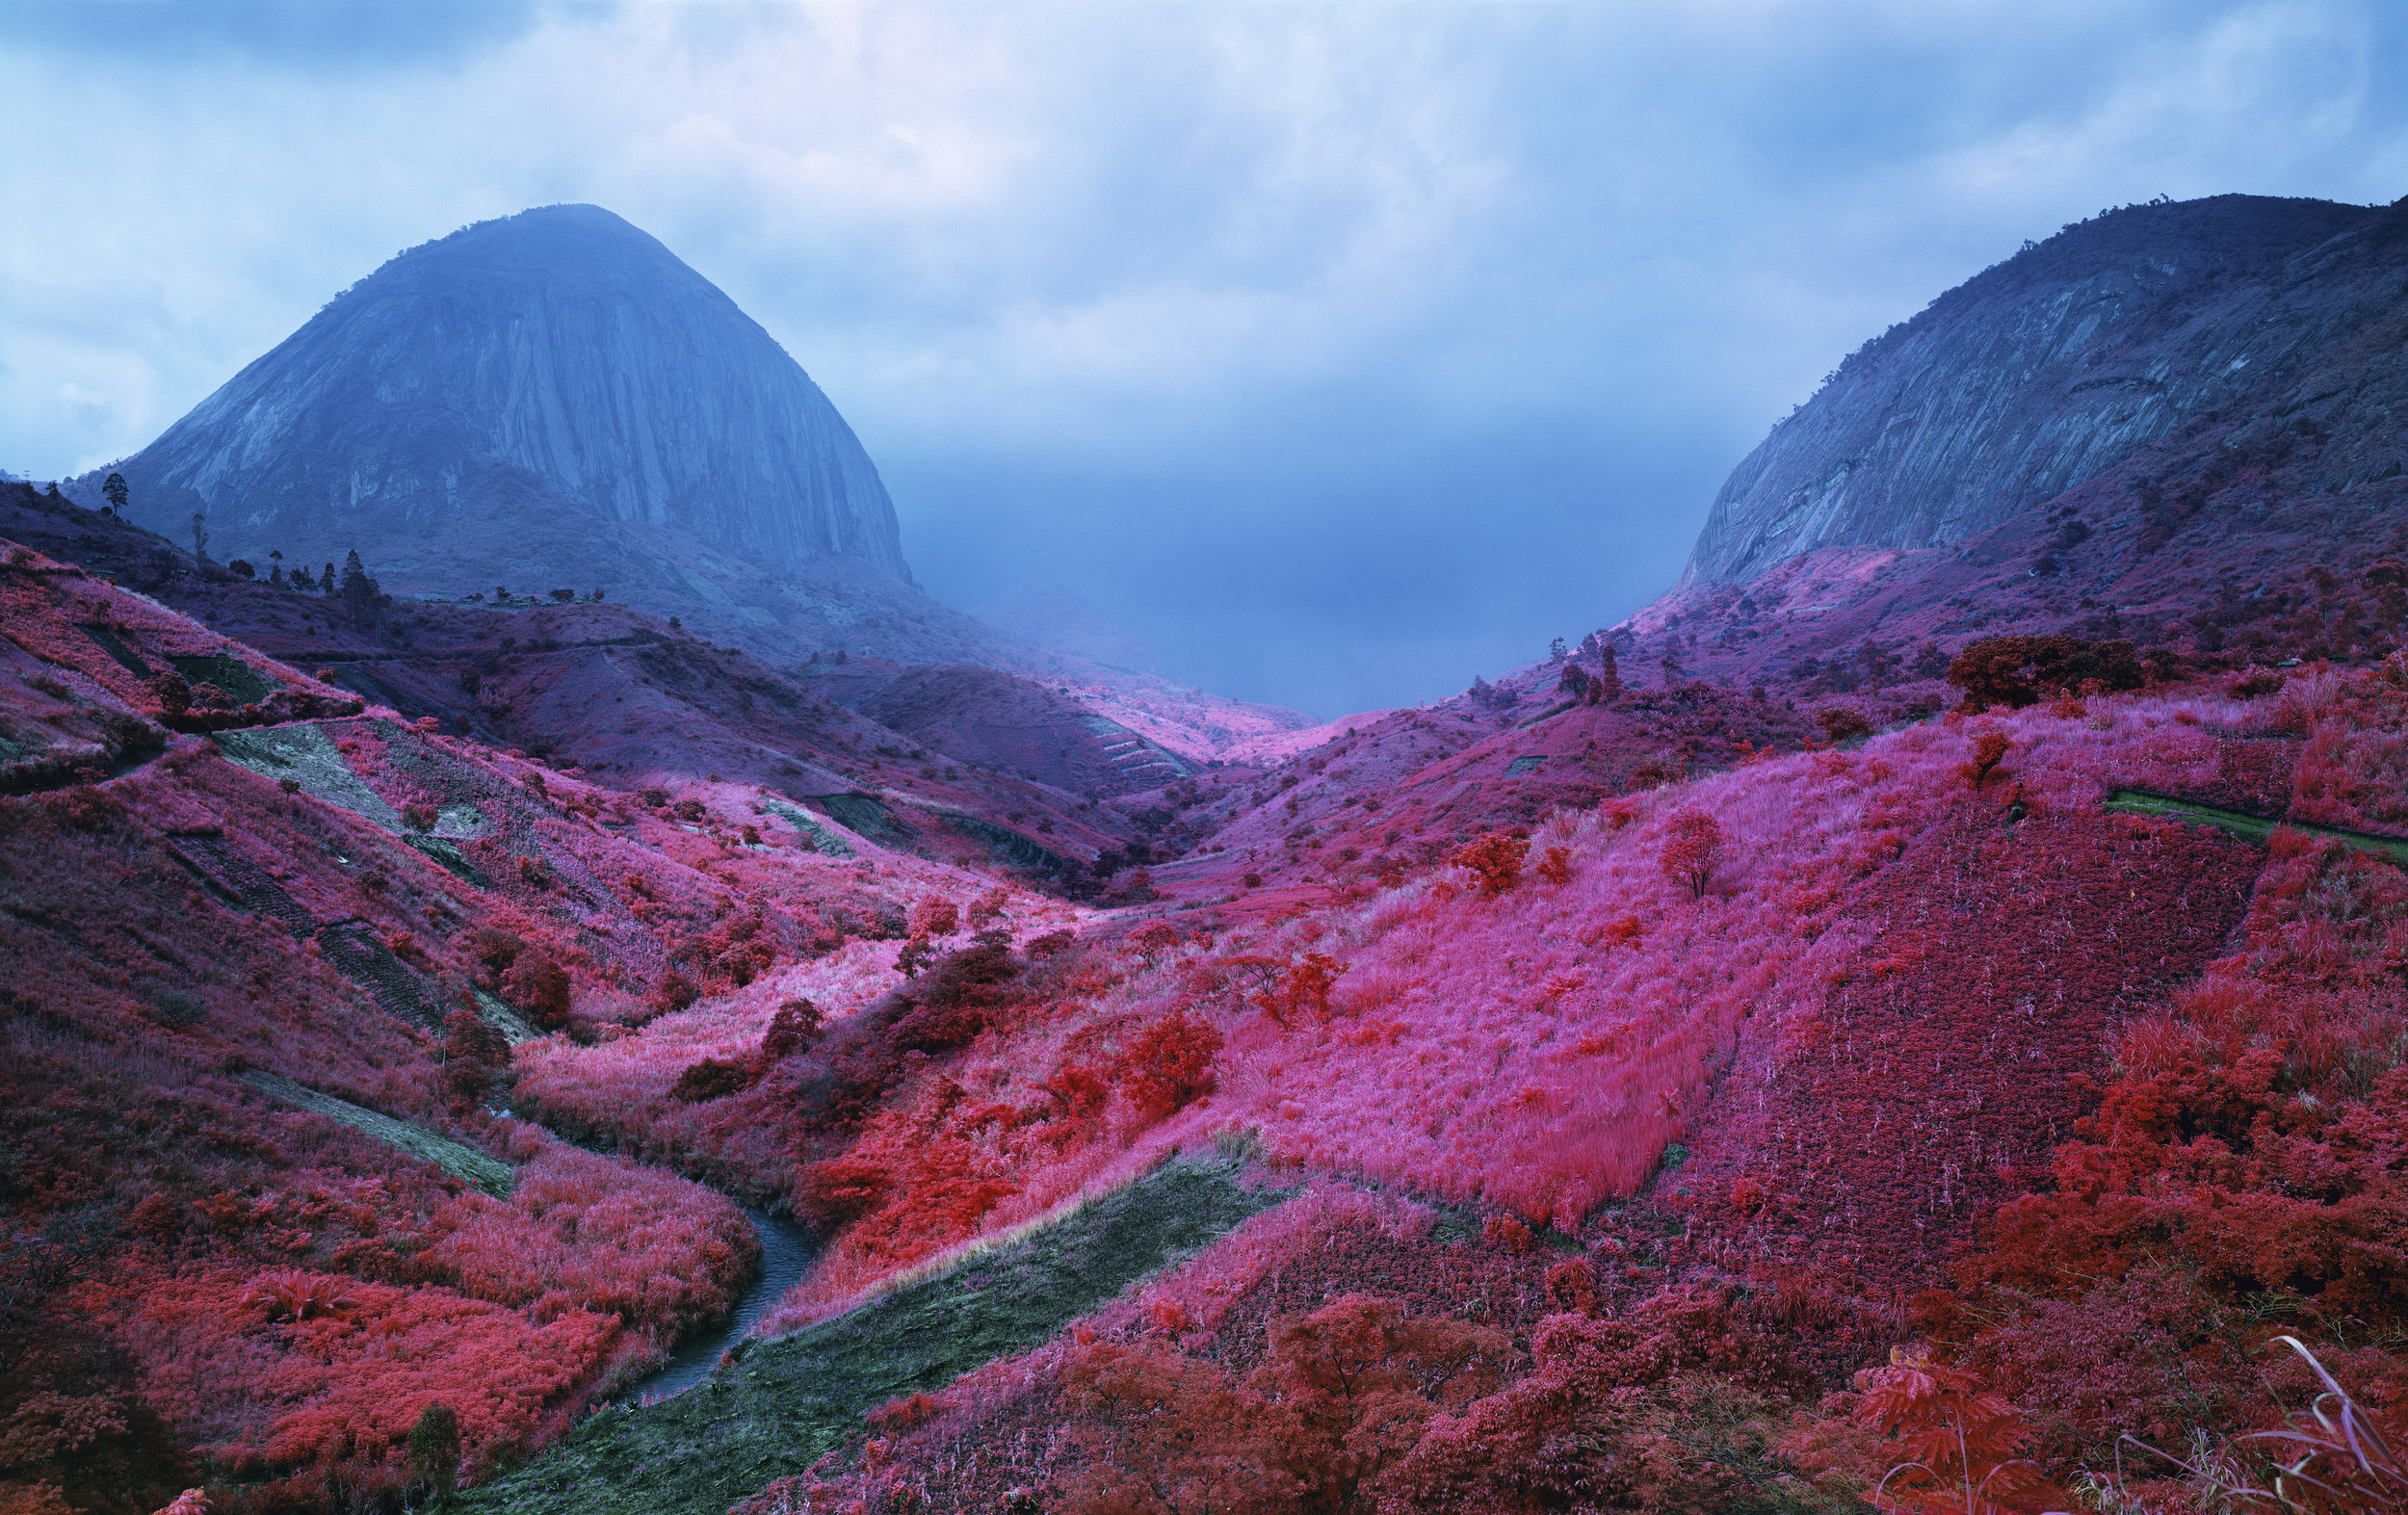 Poison Glen, South Kivu, Eastern Congo, 2012 Digital C print, 50 x 80 inches© Richard Mosse Courtesy of the artist and Jack Shainman Gallery